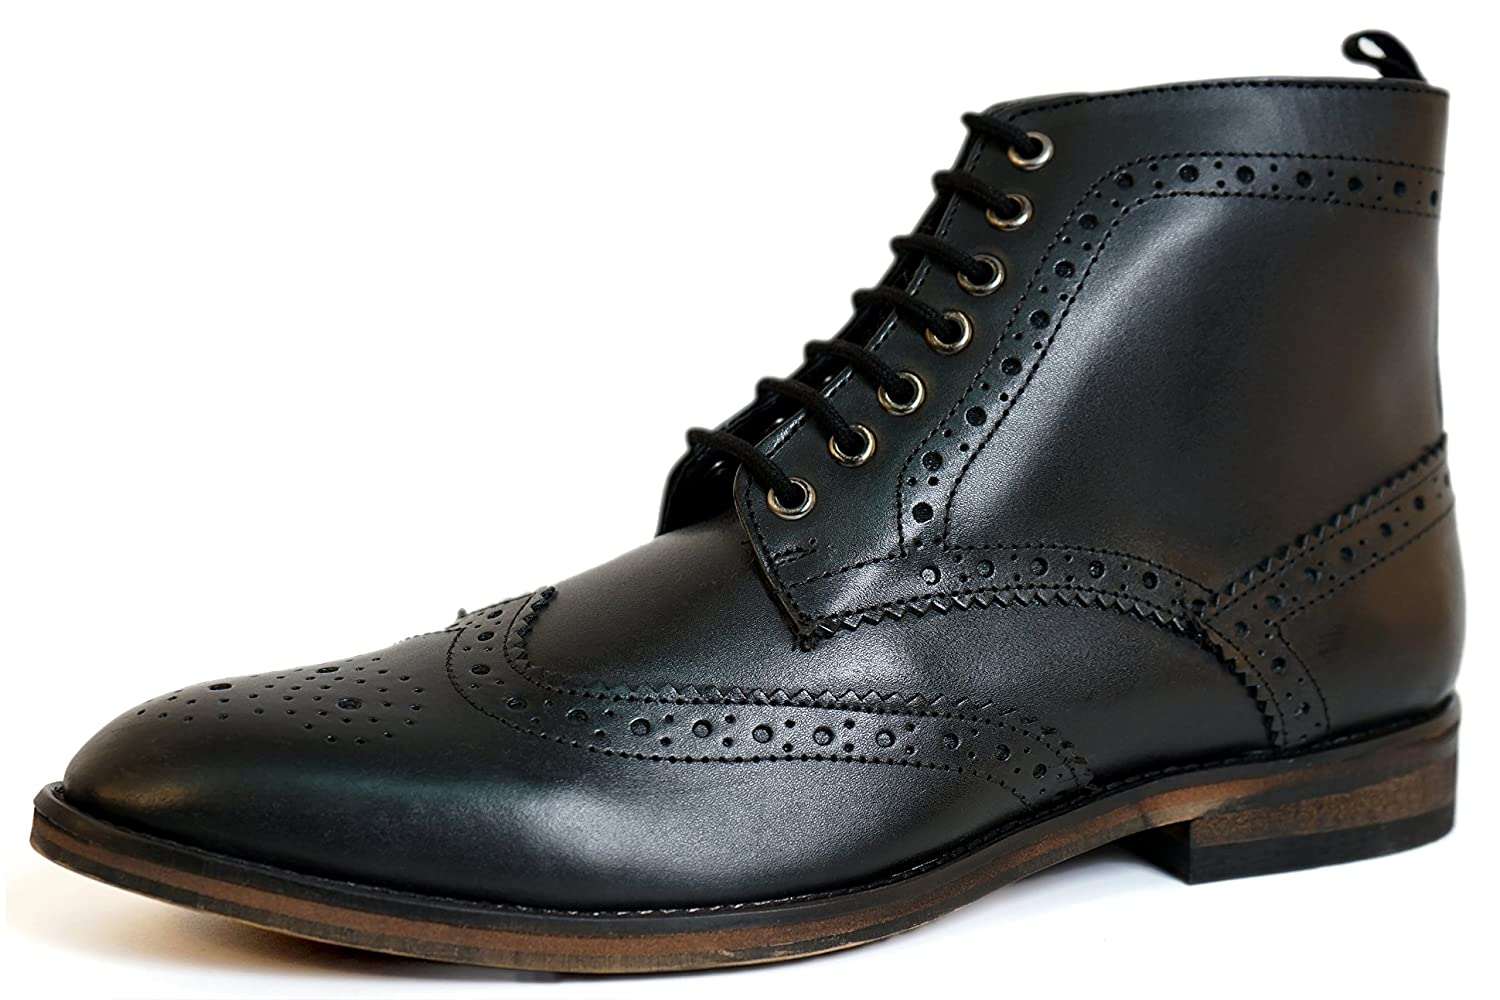 Aspele Mens Classic Leather Lace up Brogues Ankle Boots  Tan Burnish  Black and Brown hellipKlassische Herren Brogues Stiefelette Schwarz